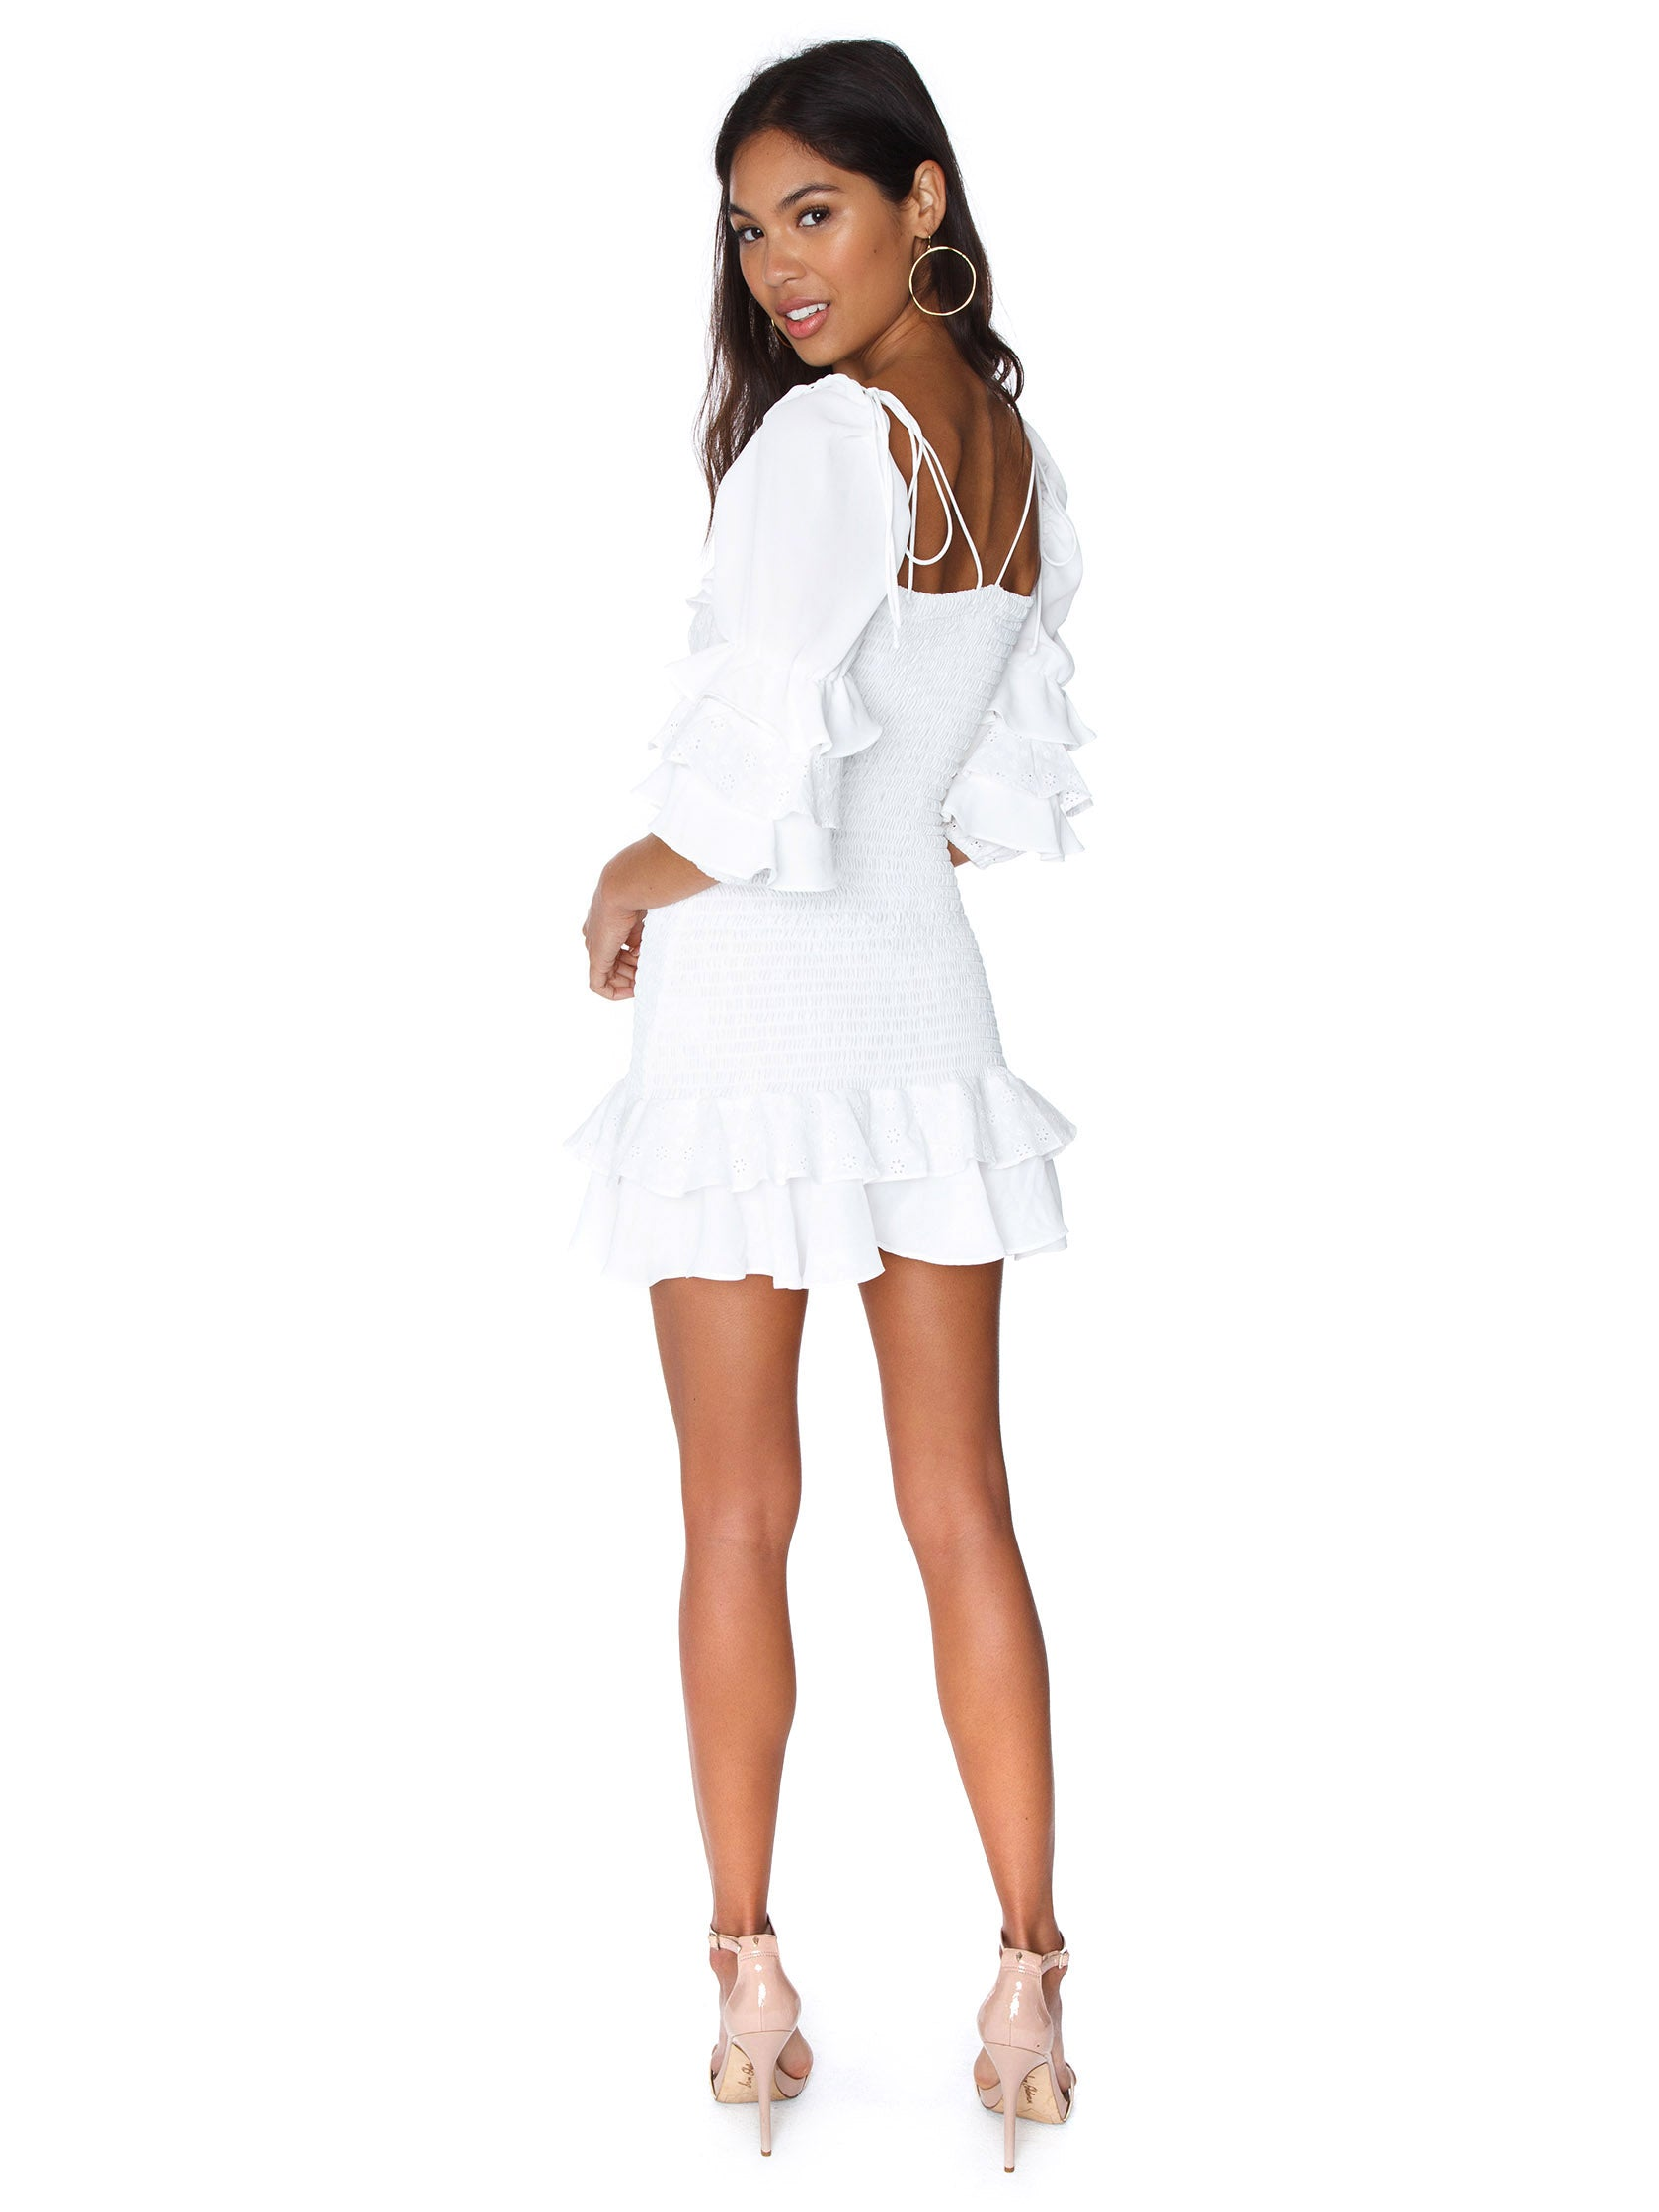 Women wearing a dress rental from For Love & Lemons called Bora Bora Ruffle Mini Dress